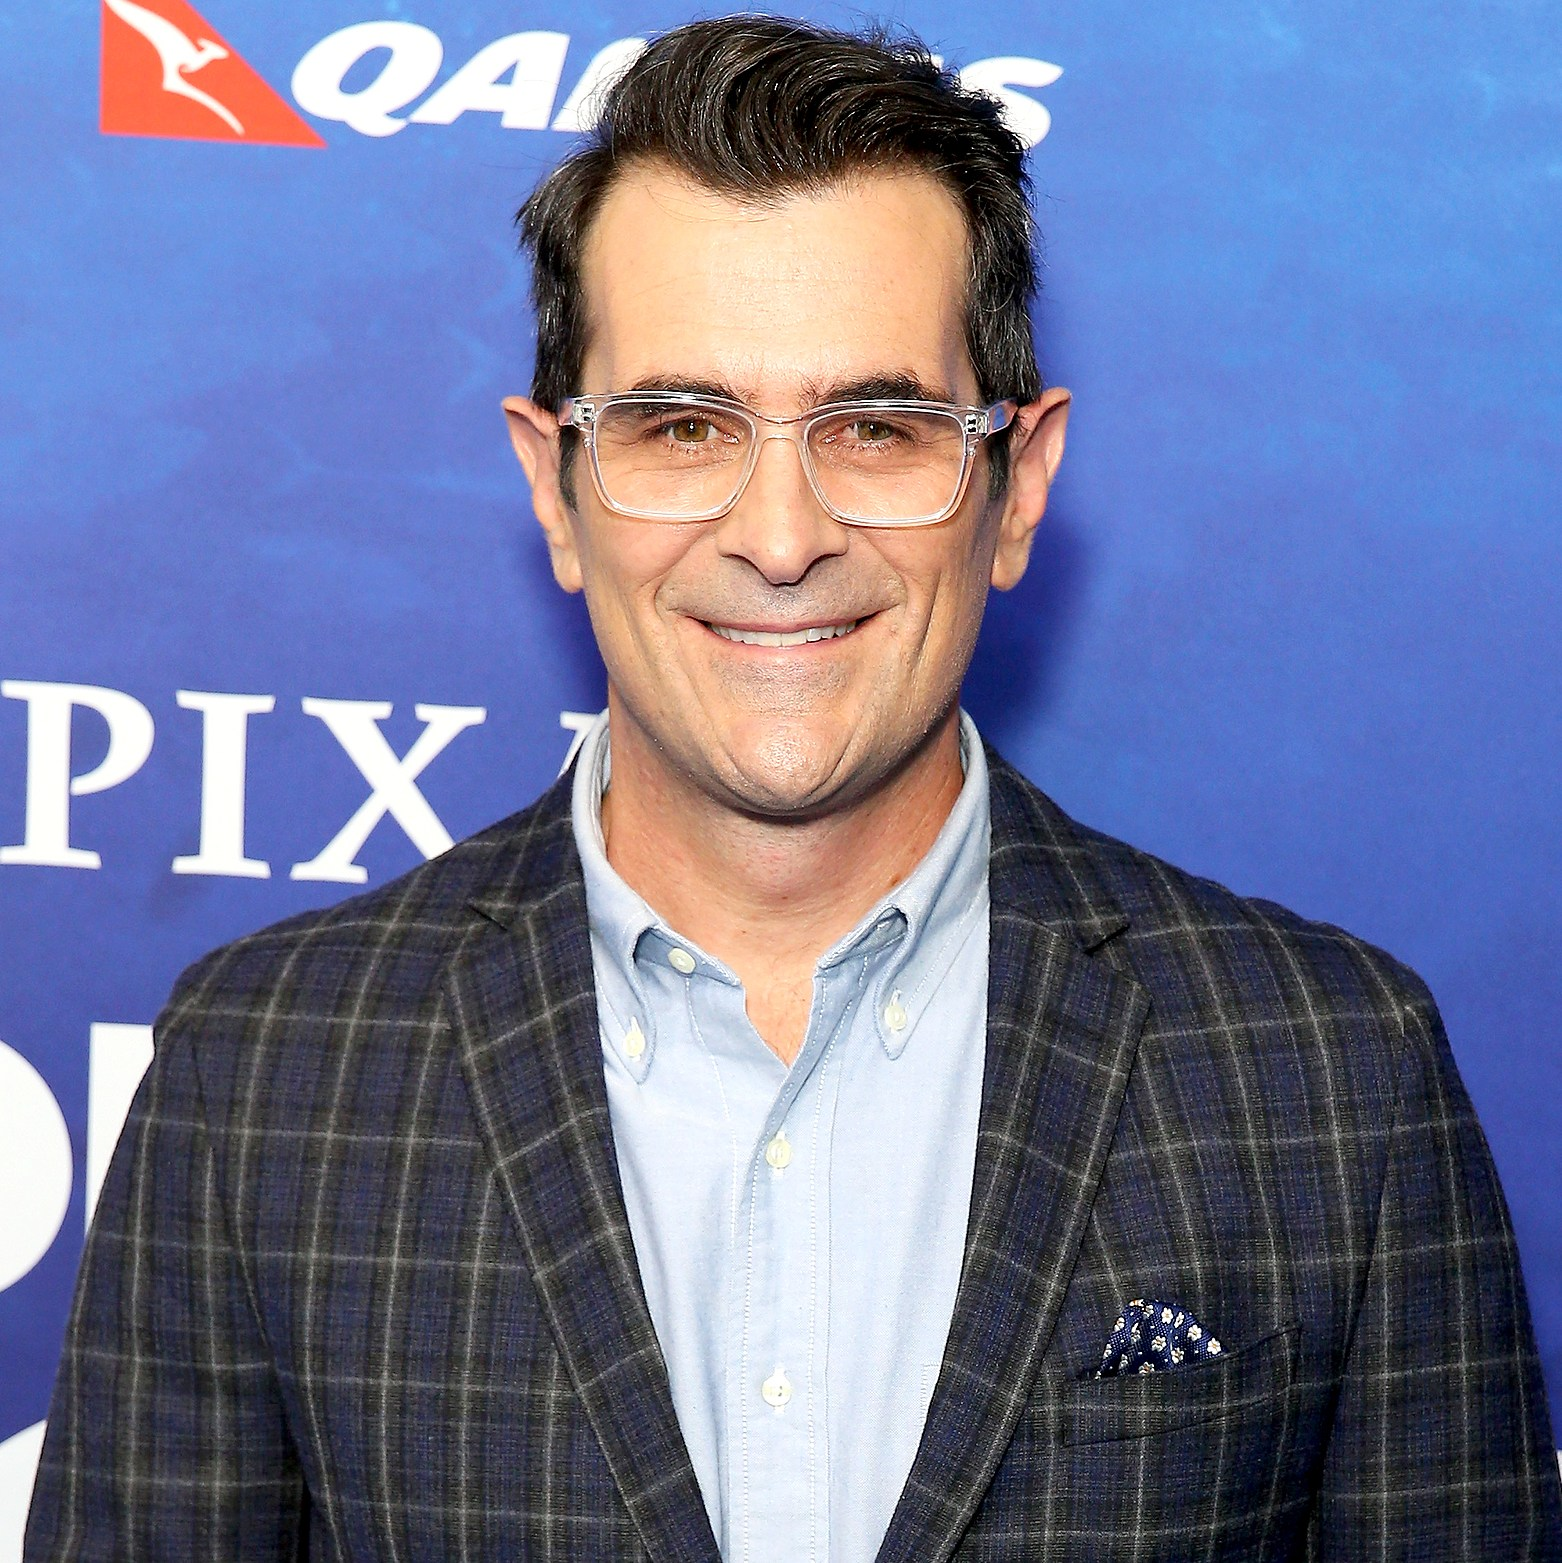 Ty Burrell arrives ahead of the Finding Dory Australian Premiere at Event Cinemas George Street on June 15, 2016 in Sydney, Australia.